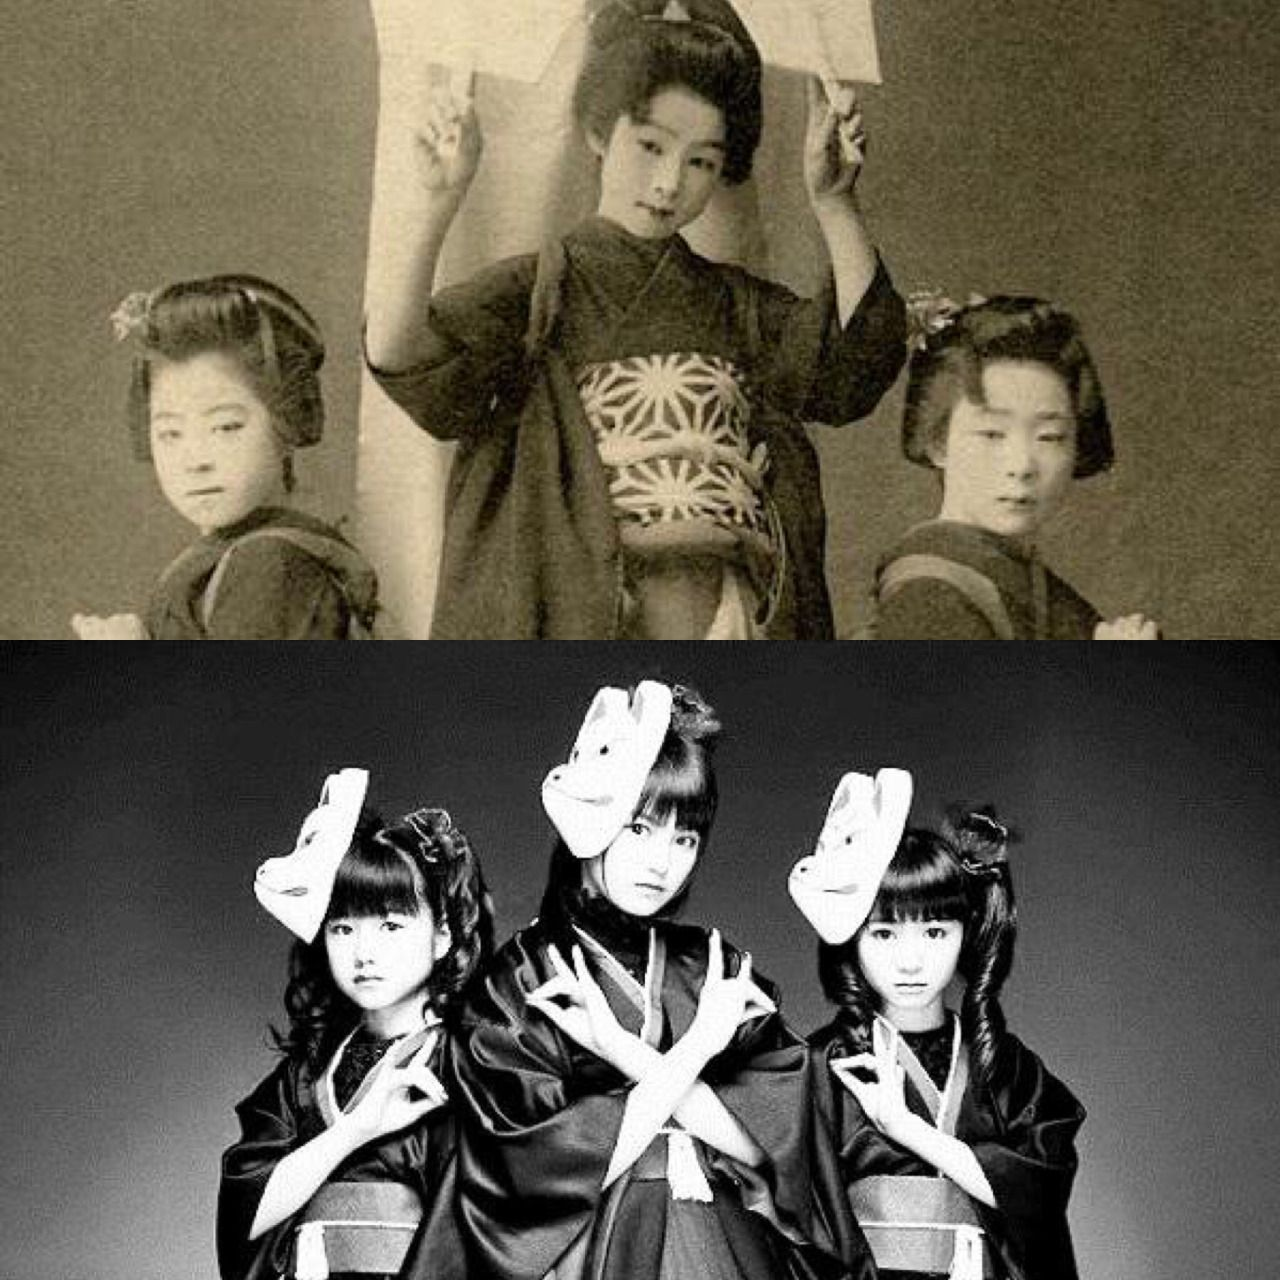 Tumblr: rosamour:    RT @HistoryImg: 日本の少女3人組1900年と現在 Three young Japanese girls 1900 and Now @BABYMETAL_JAPAN http://t.co/BqkmiO5CMZ